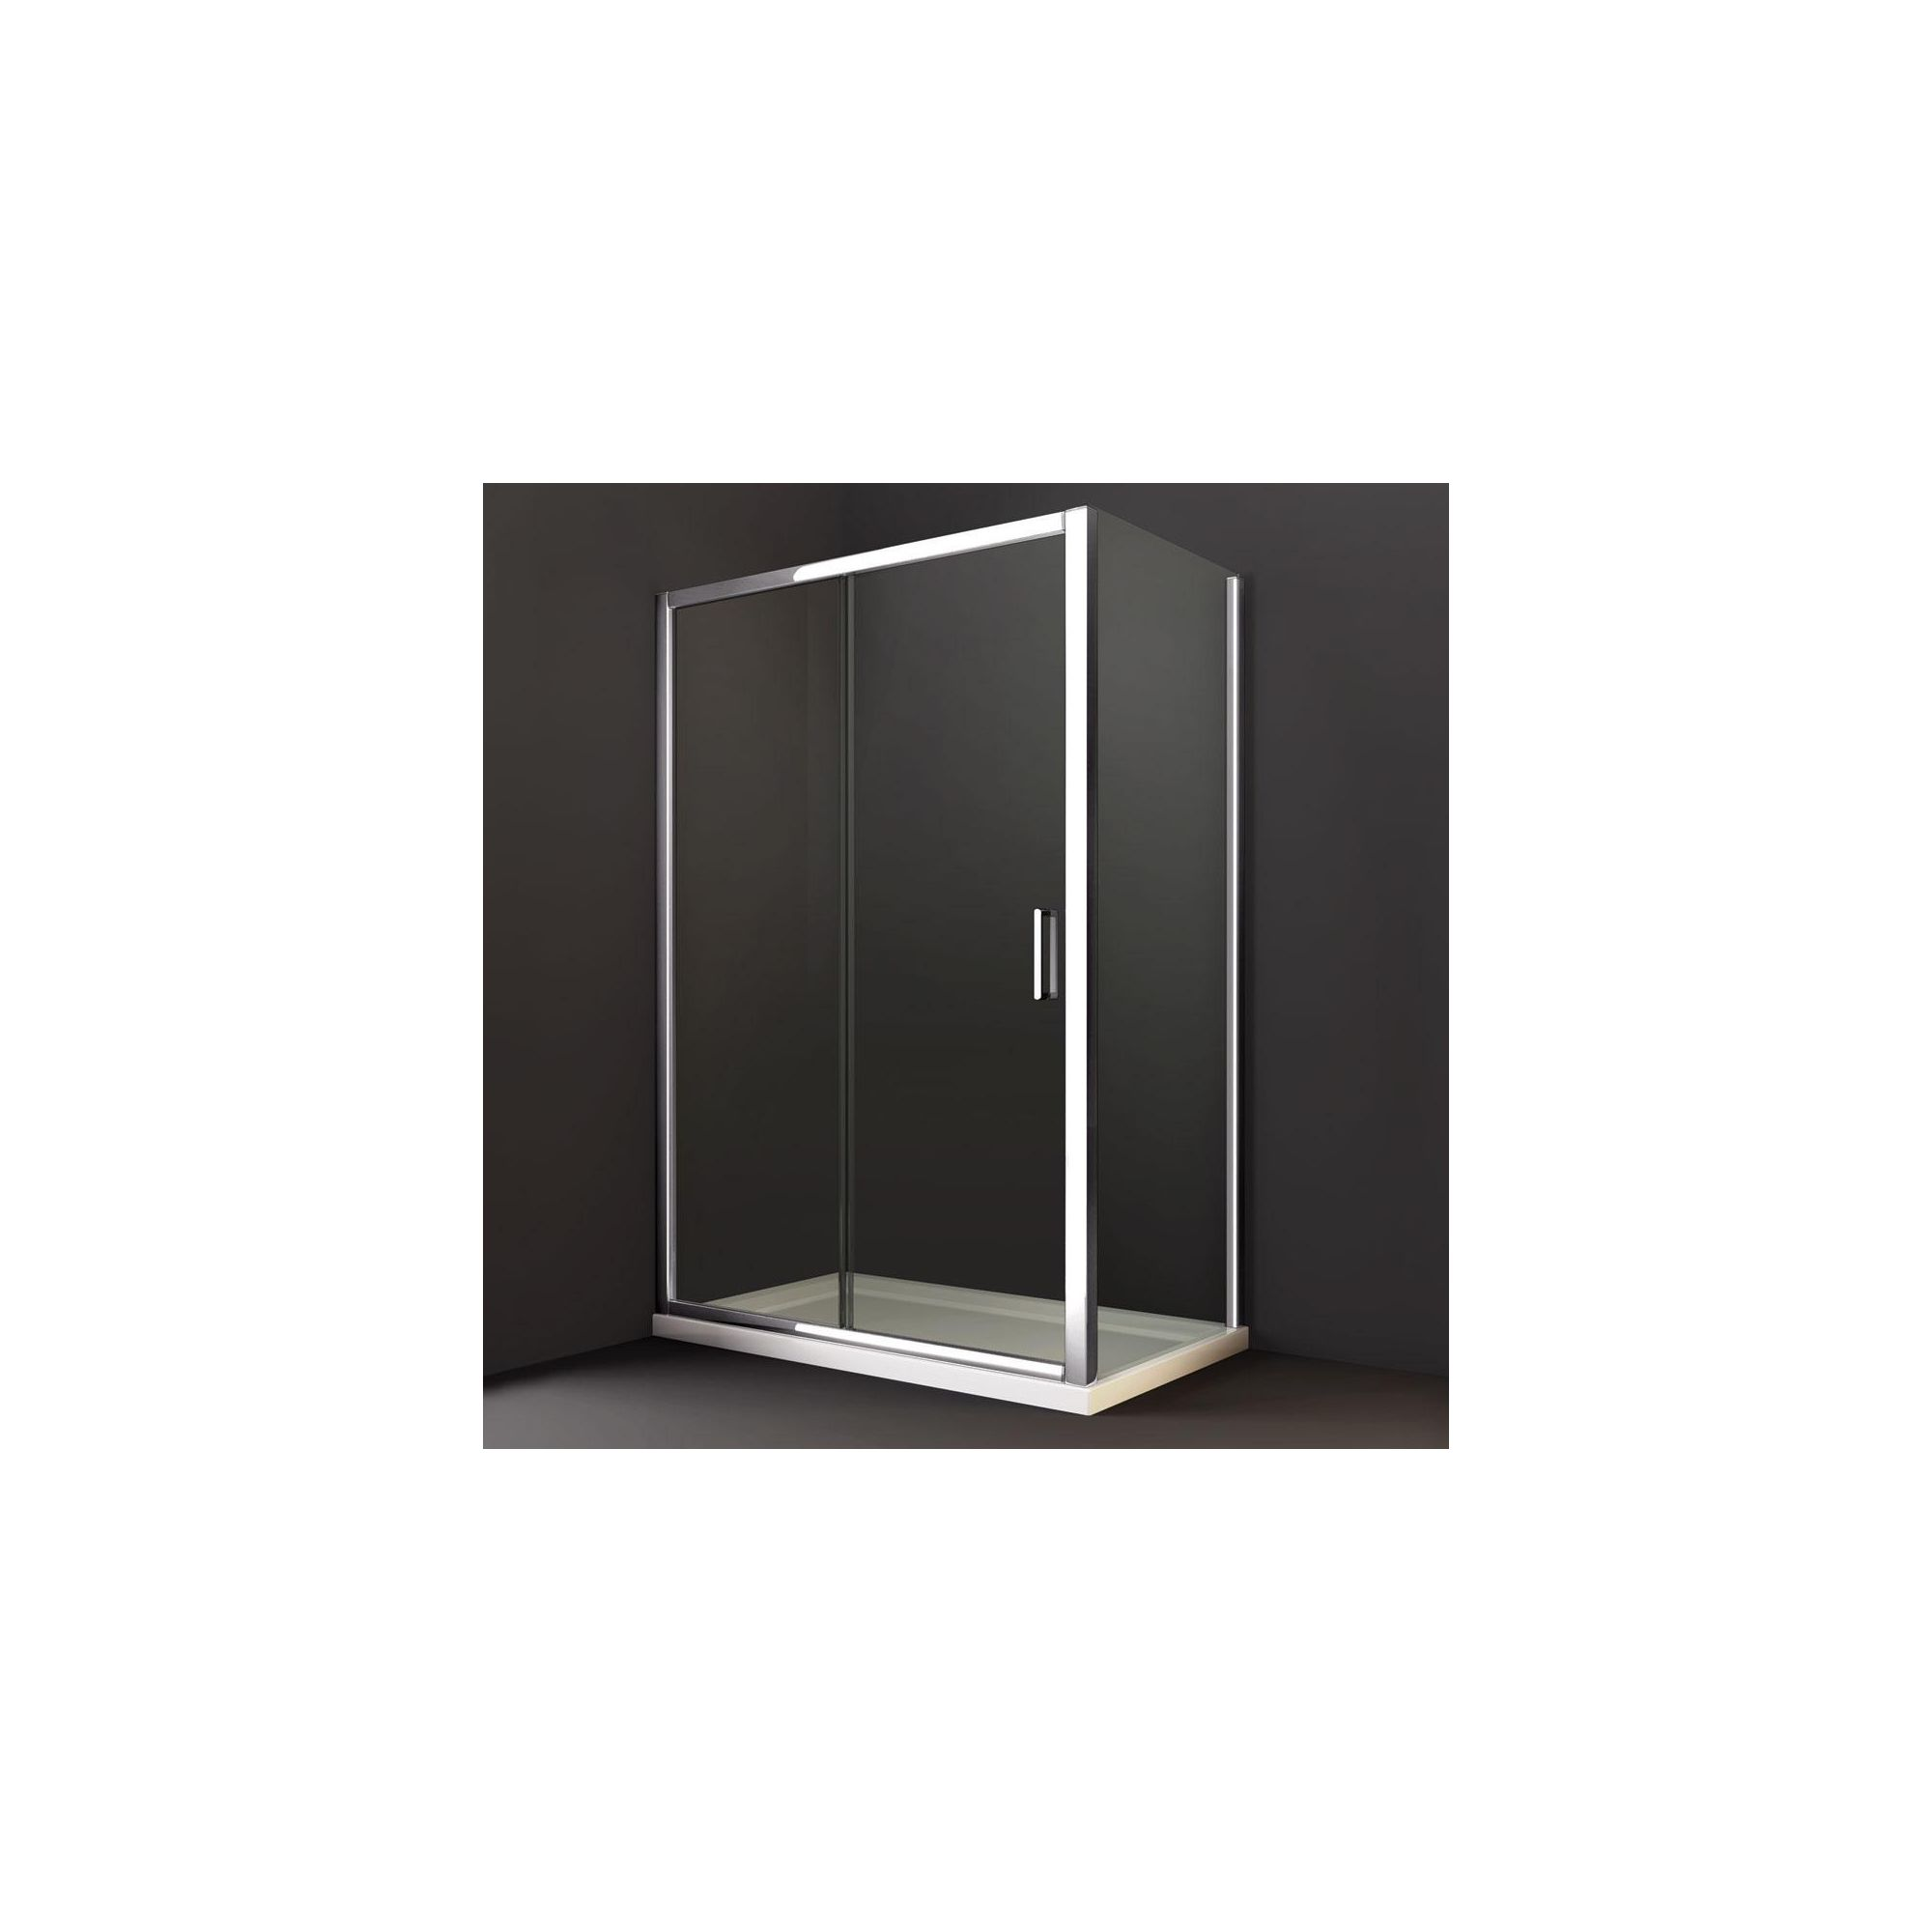 Merlyn Series 8 Sliding Shower Door, 1000mm Wide, Chrome Frame, 8mm Glass at Tesco Direct